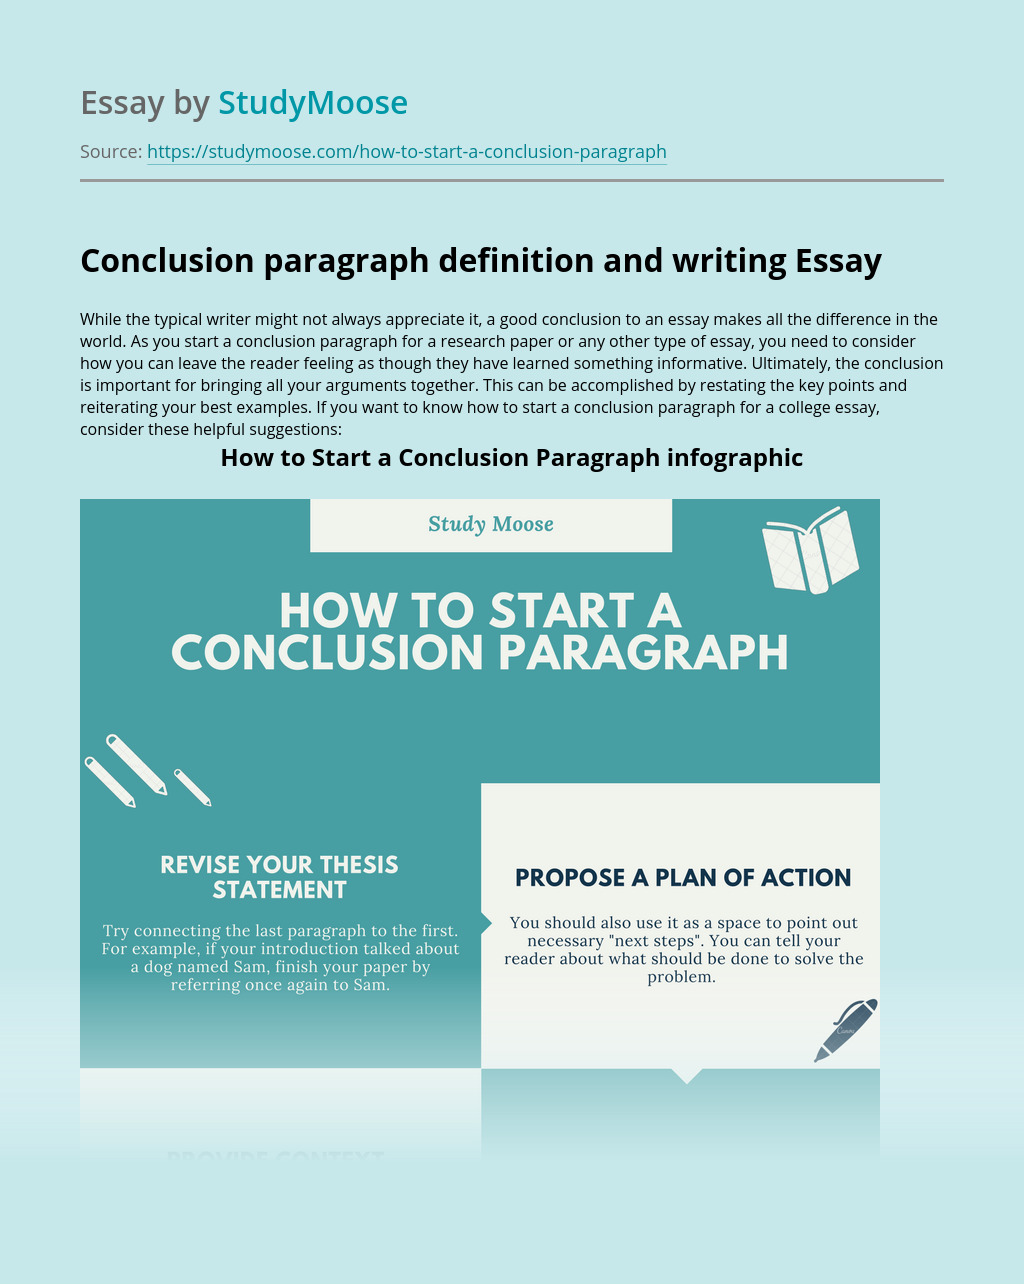 Conclusion paragraph definition and writing